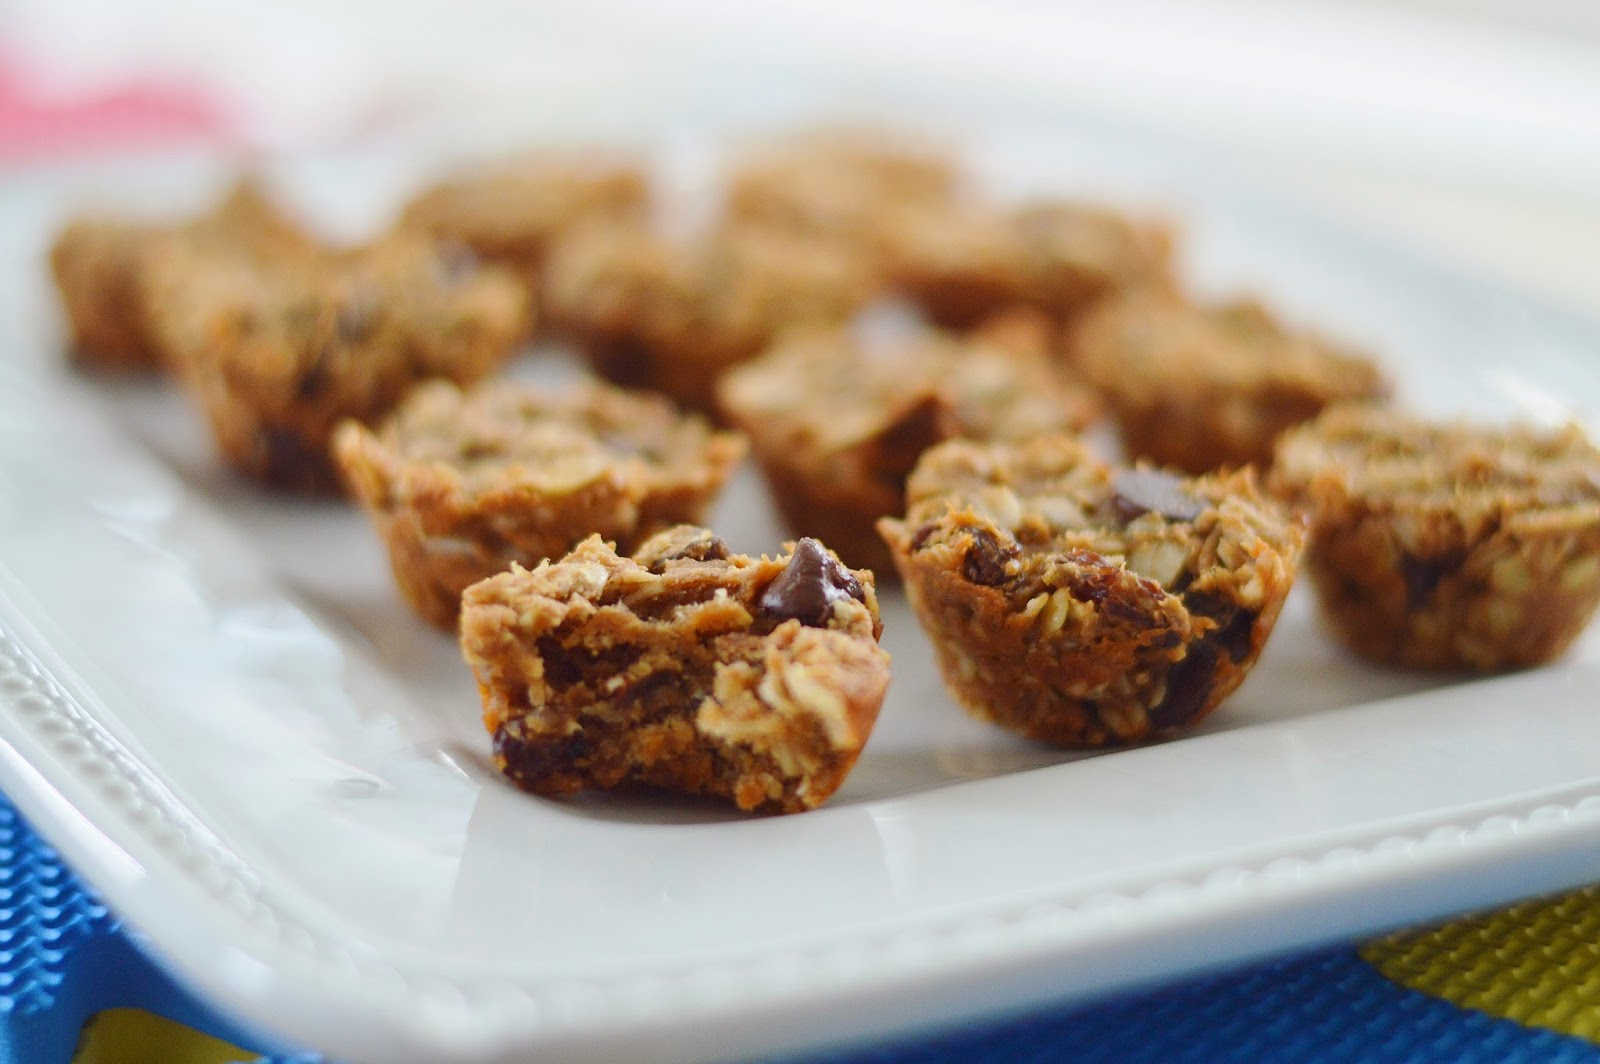 The Art of Comfort Baking: Mini Oatmeal Chocolate Chip Muffins